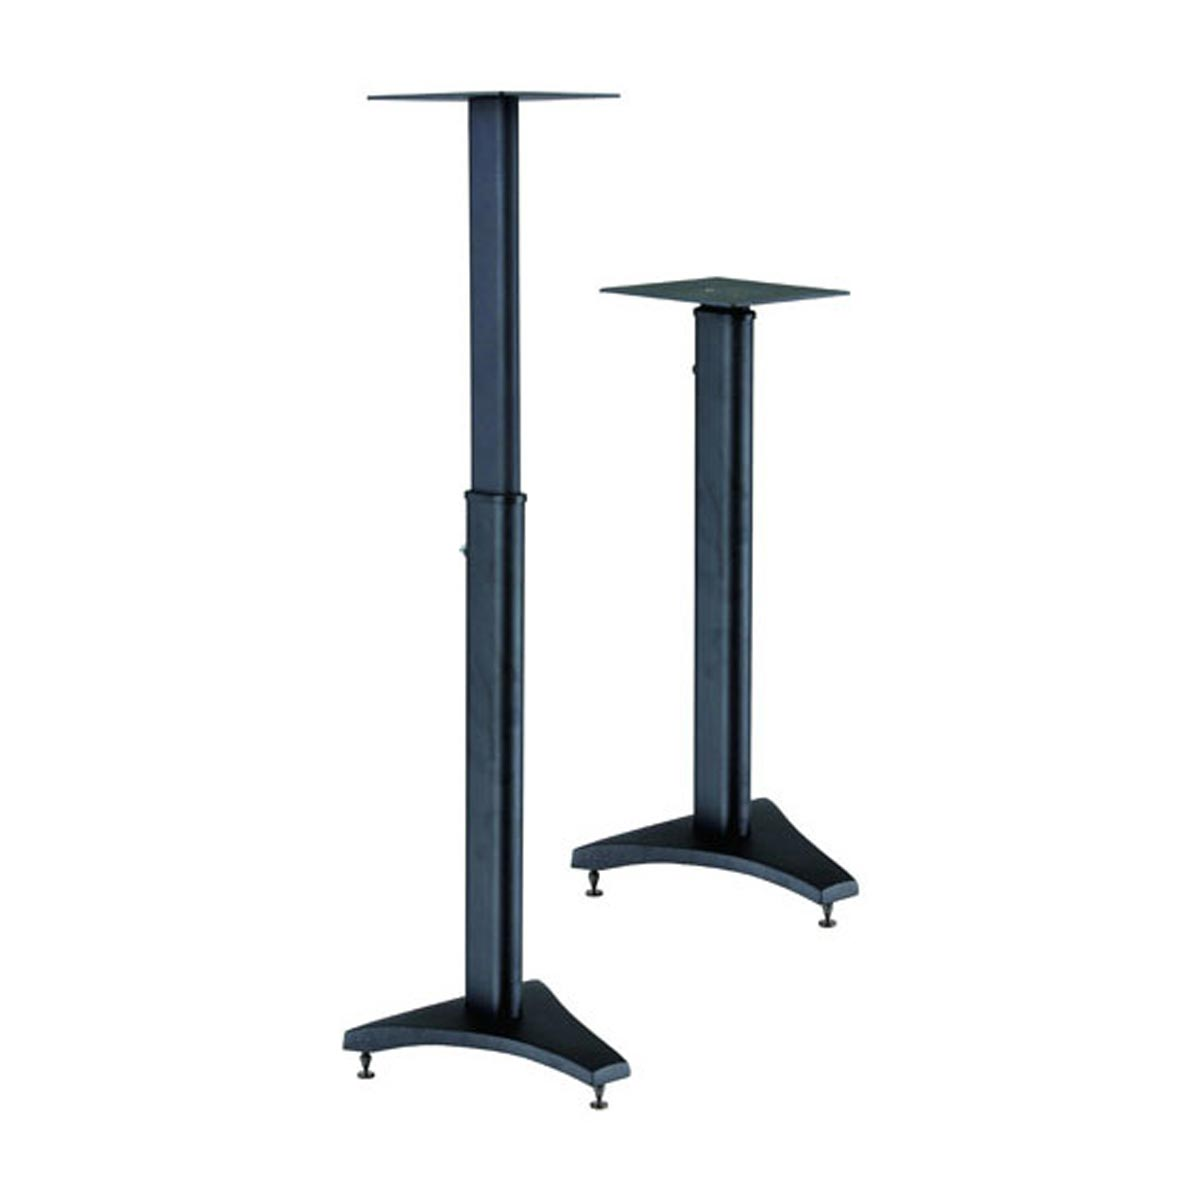 Tauris SP-9A Adjustable Height Speaker Stands (Pair)